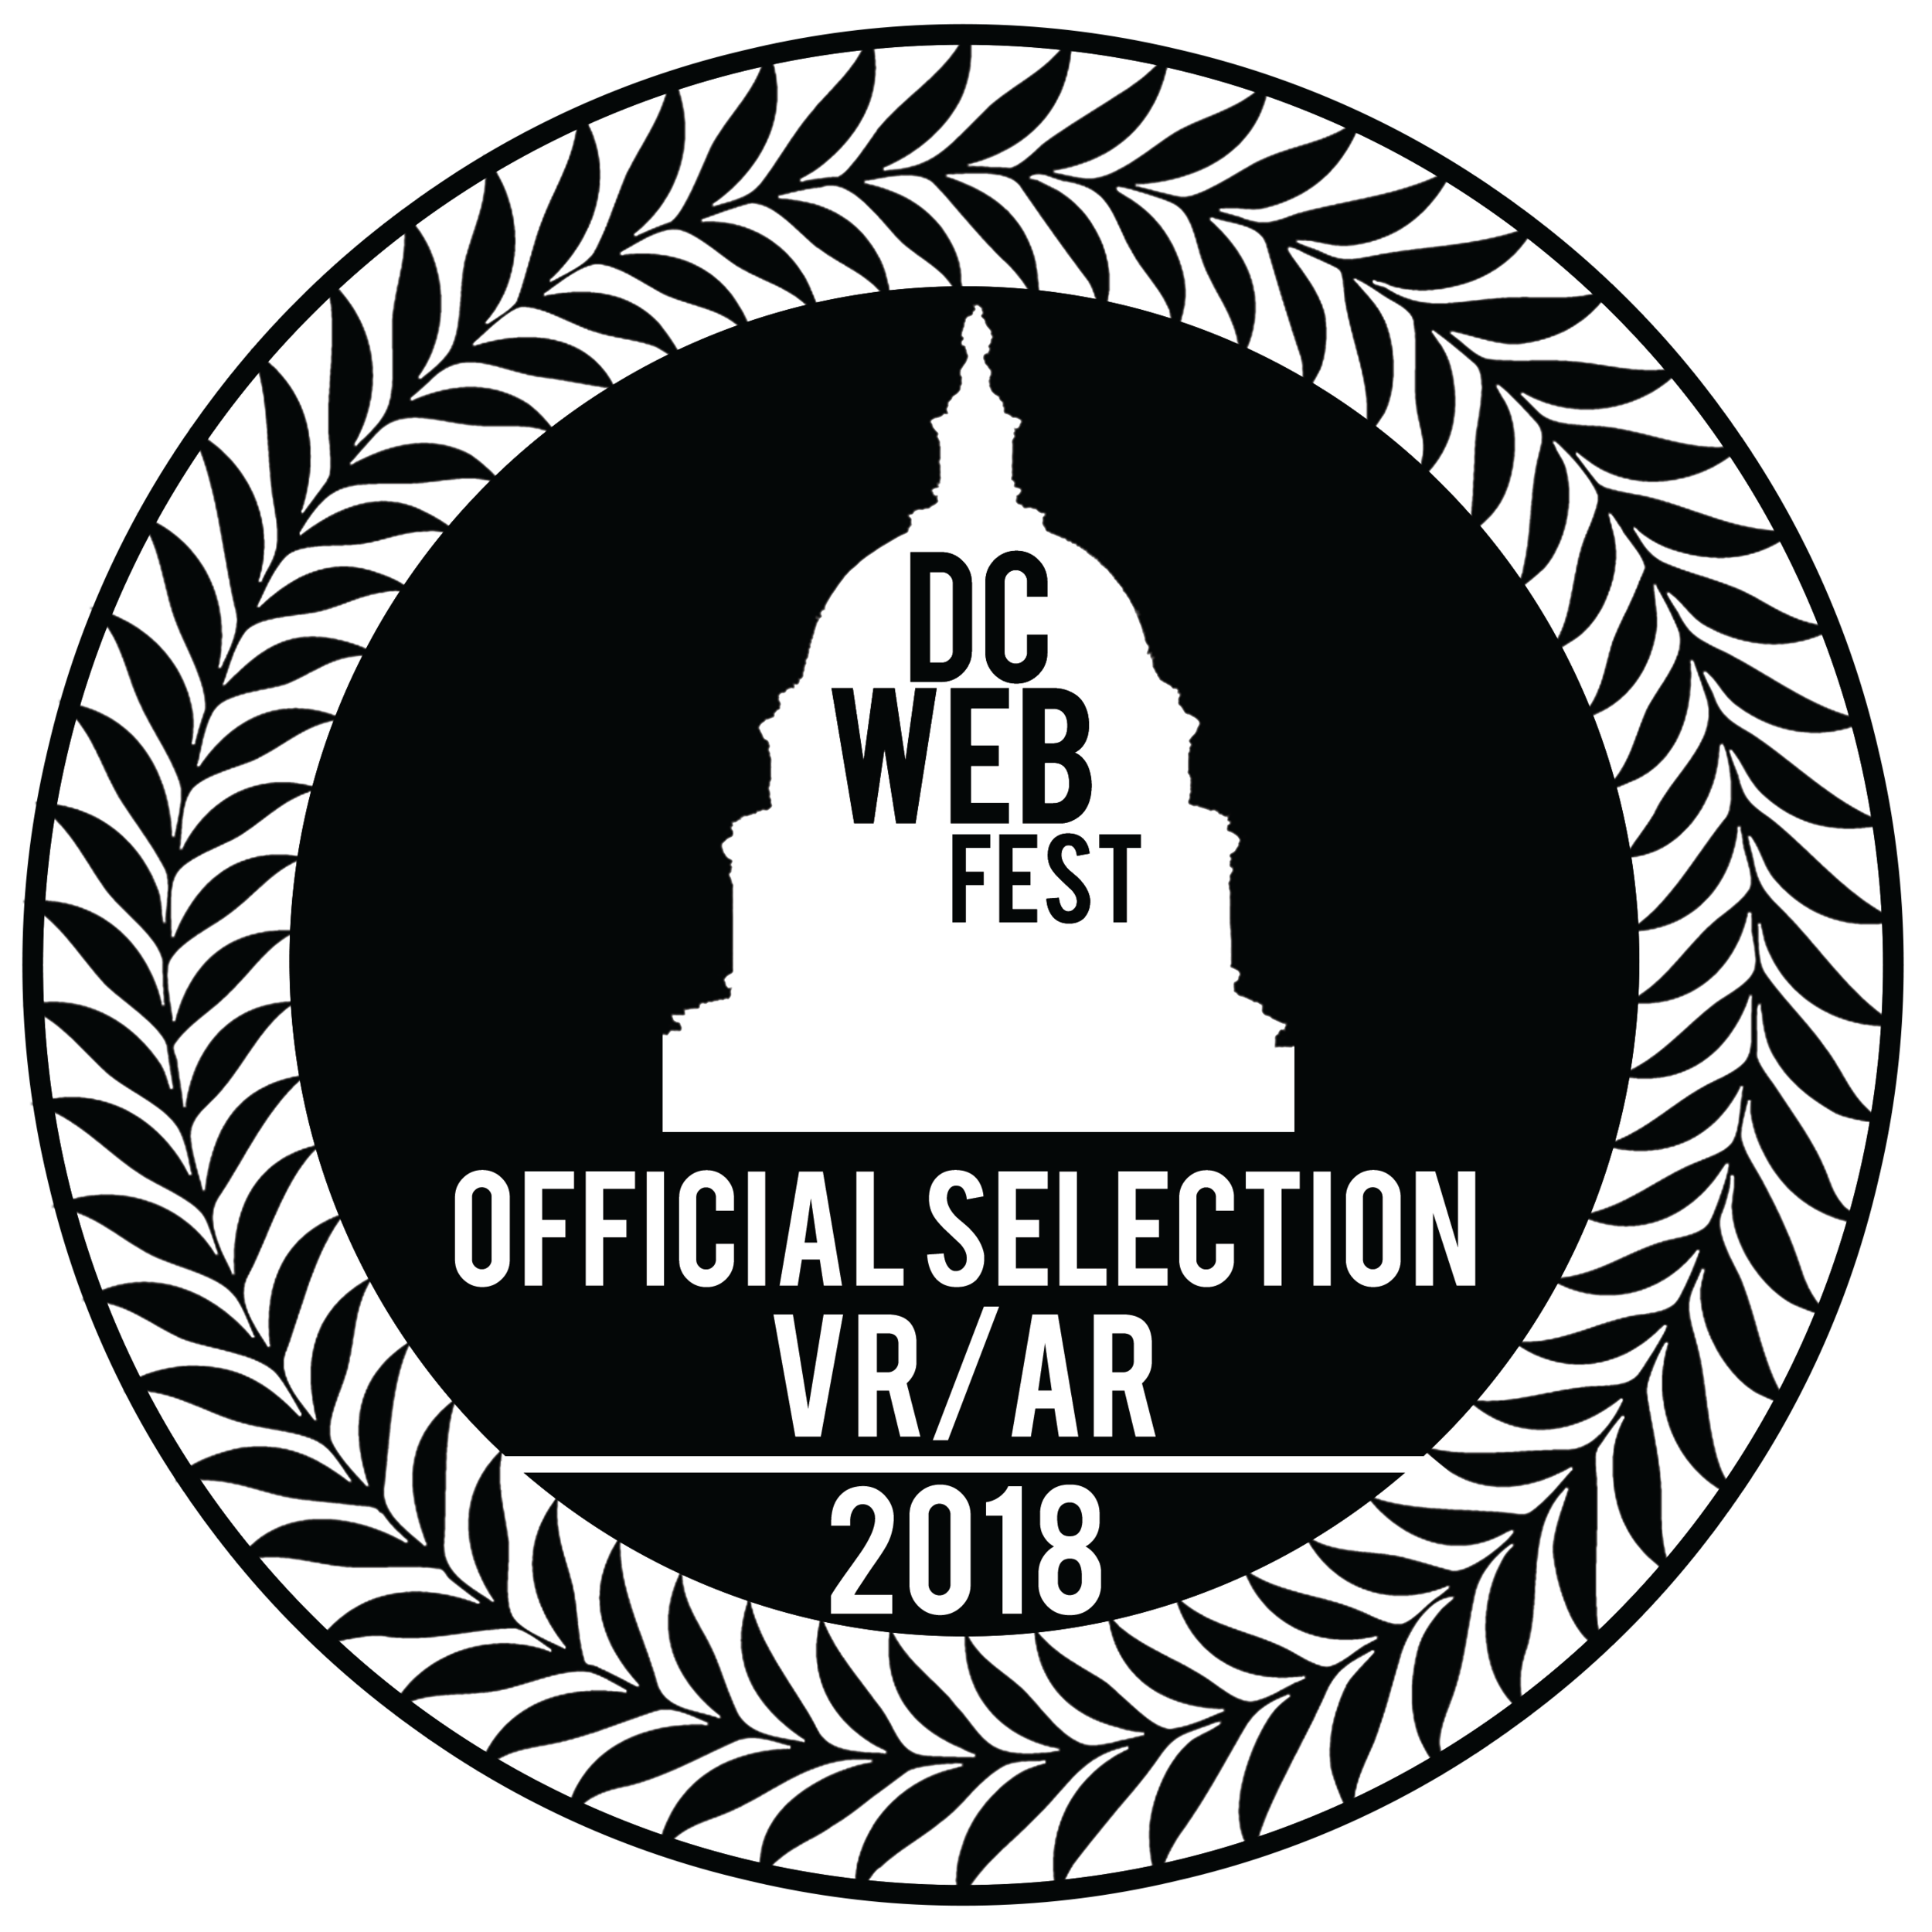 DCWF-2018-OfficialSelection-VRAR.png